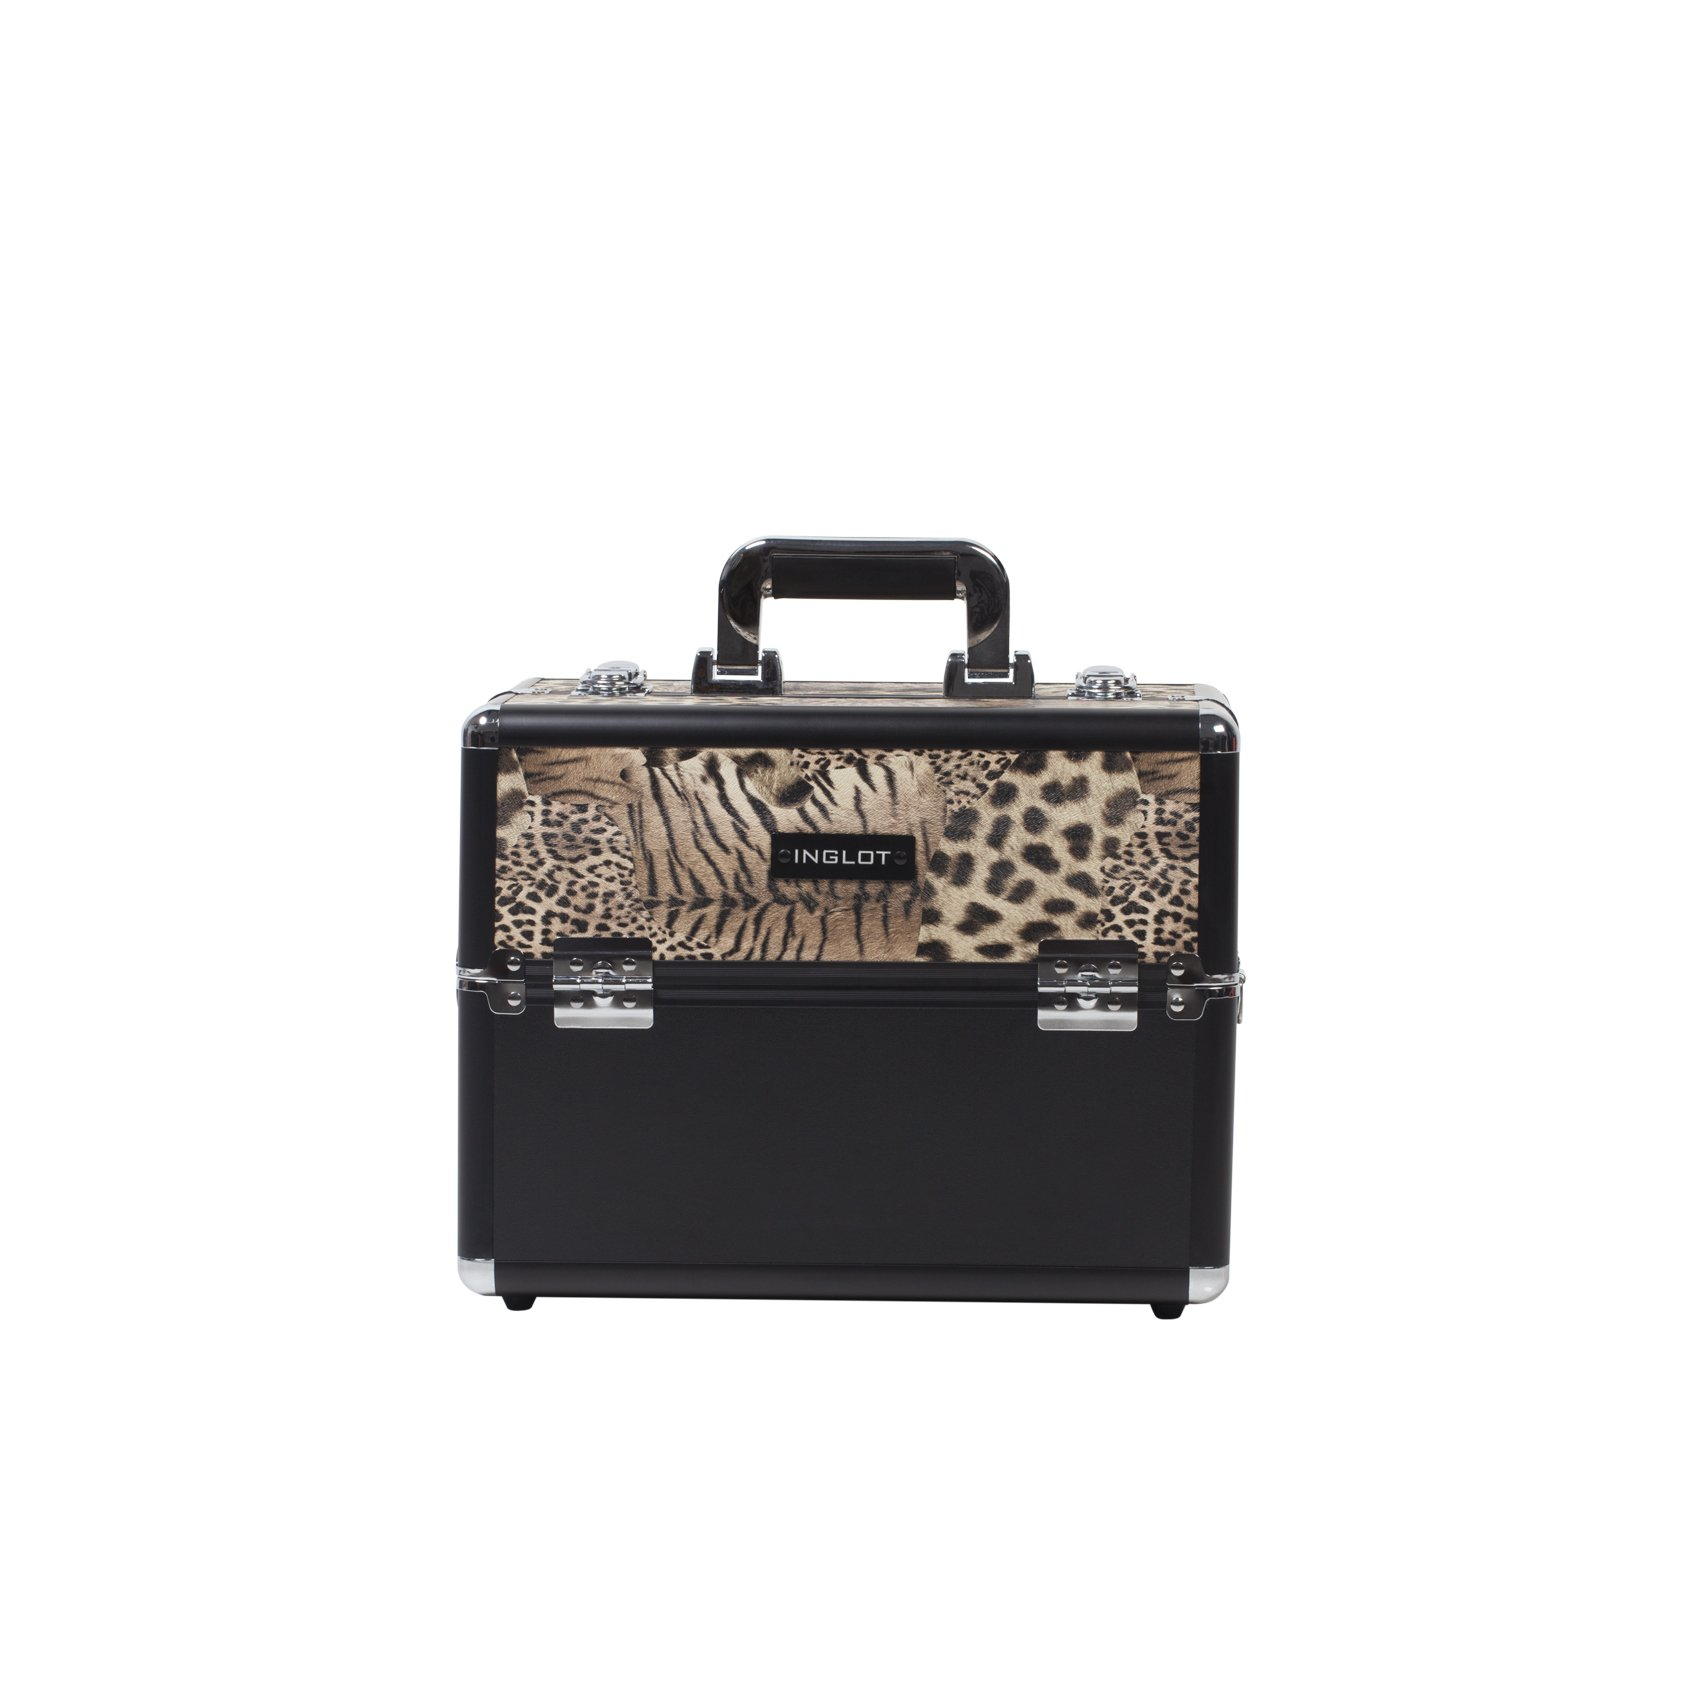 Inglot Makeup Case Kc-156-Lp by Inglot